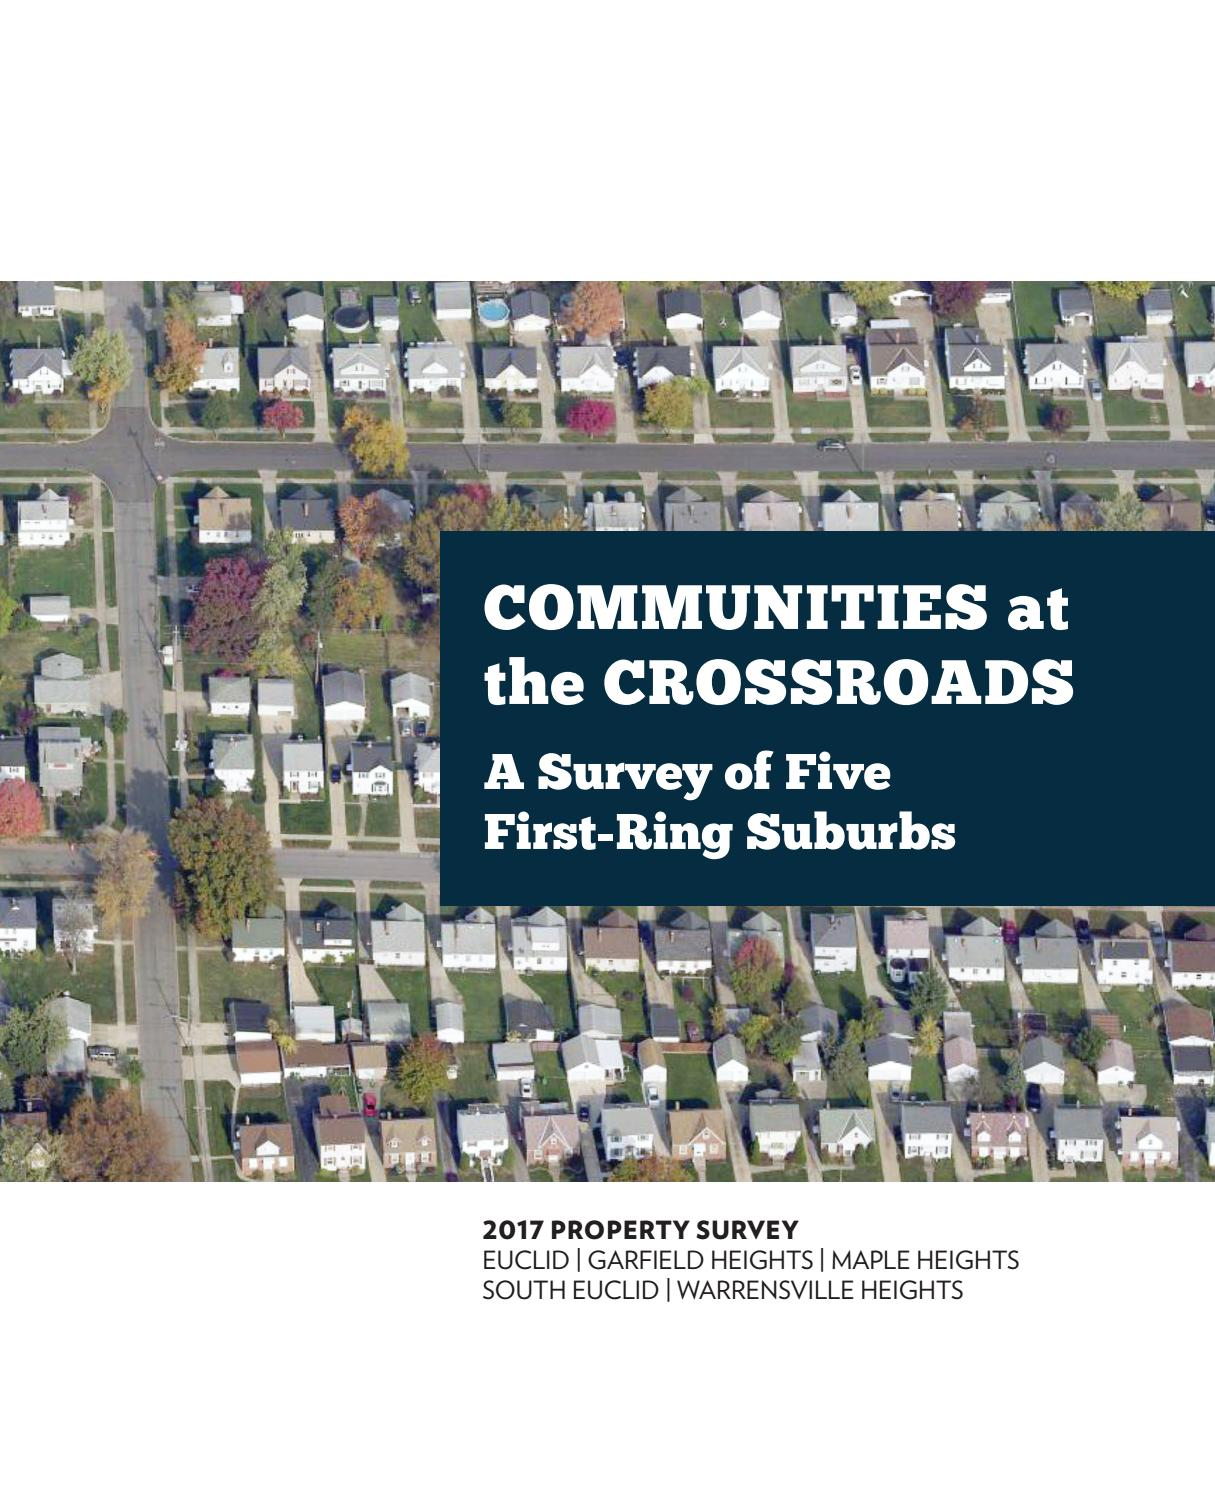 Crossroads Adrian Mi Christmas Baskets 2020 Communities at the Crossroads: A Survey of Five First Ring Suburbs